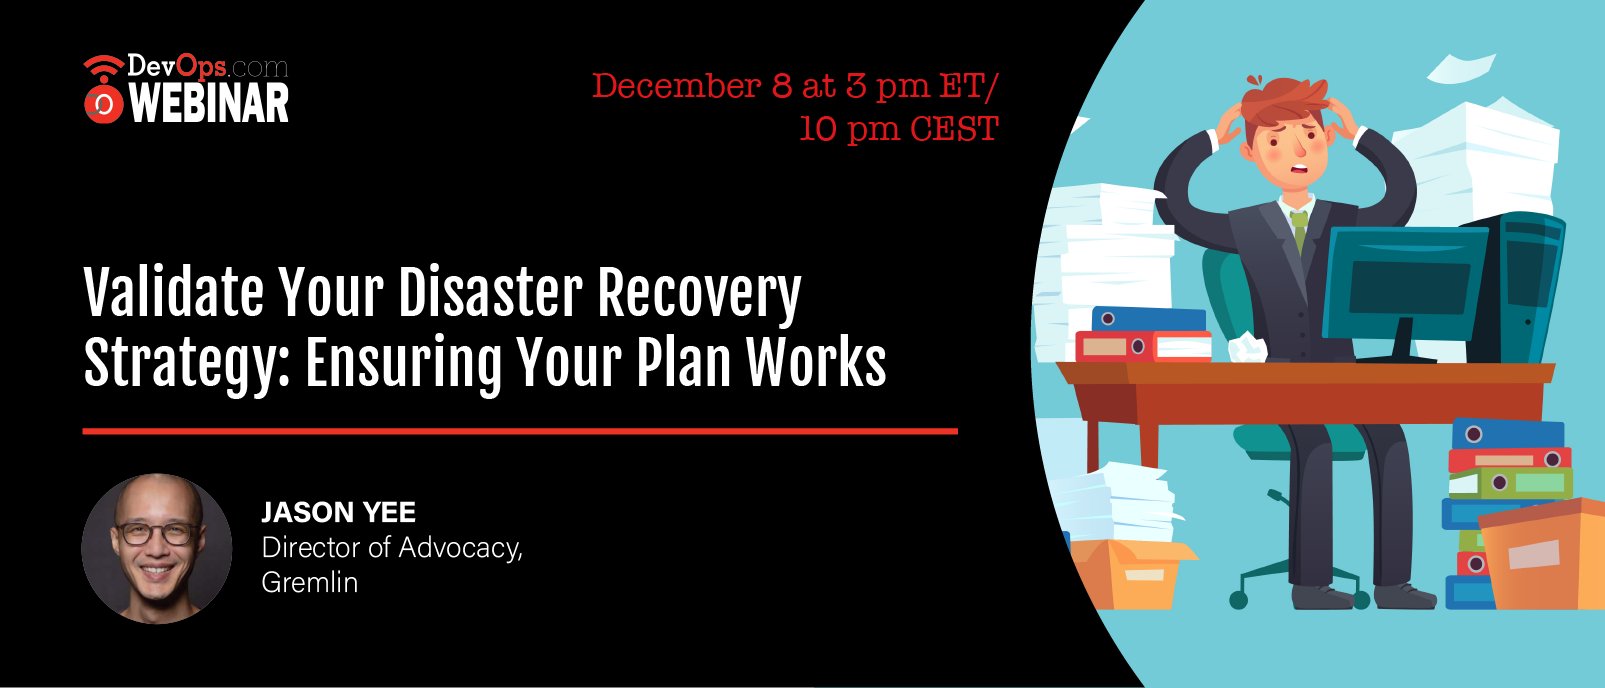 Validate Your Disaster Recovery Strategy: Ensuring Your Plan Works